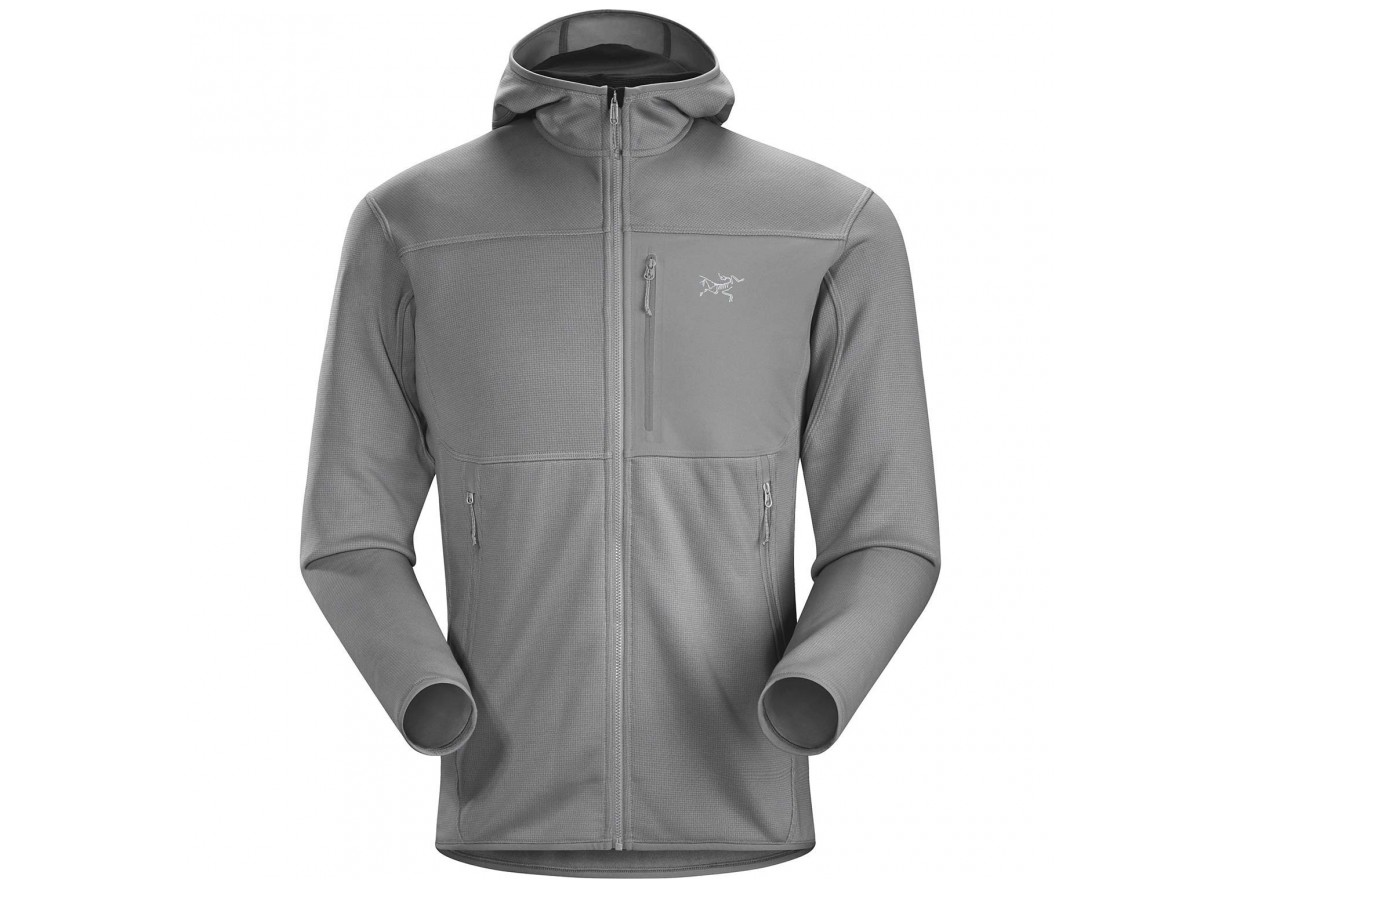 Made with Polartec Power Stretch fleece using a  Hardface Technology the Fortrez Hoody is durable to withstand the elements and against wear